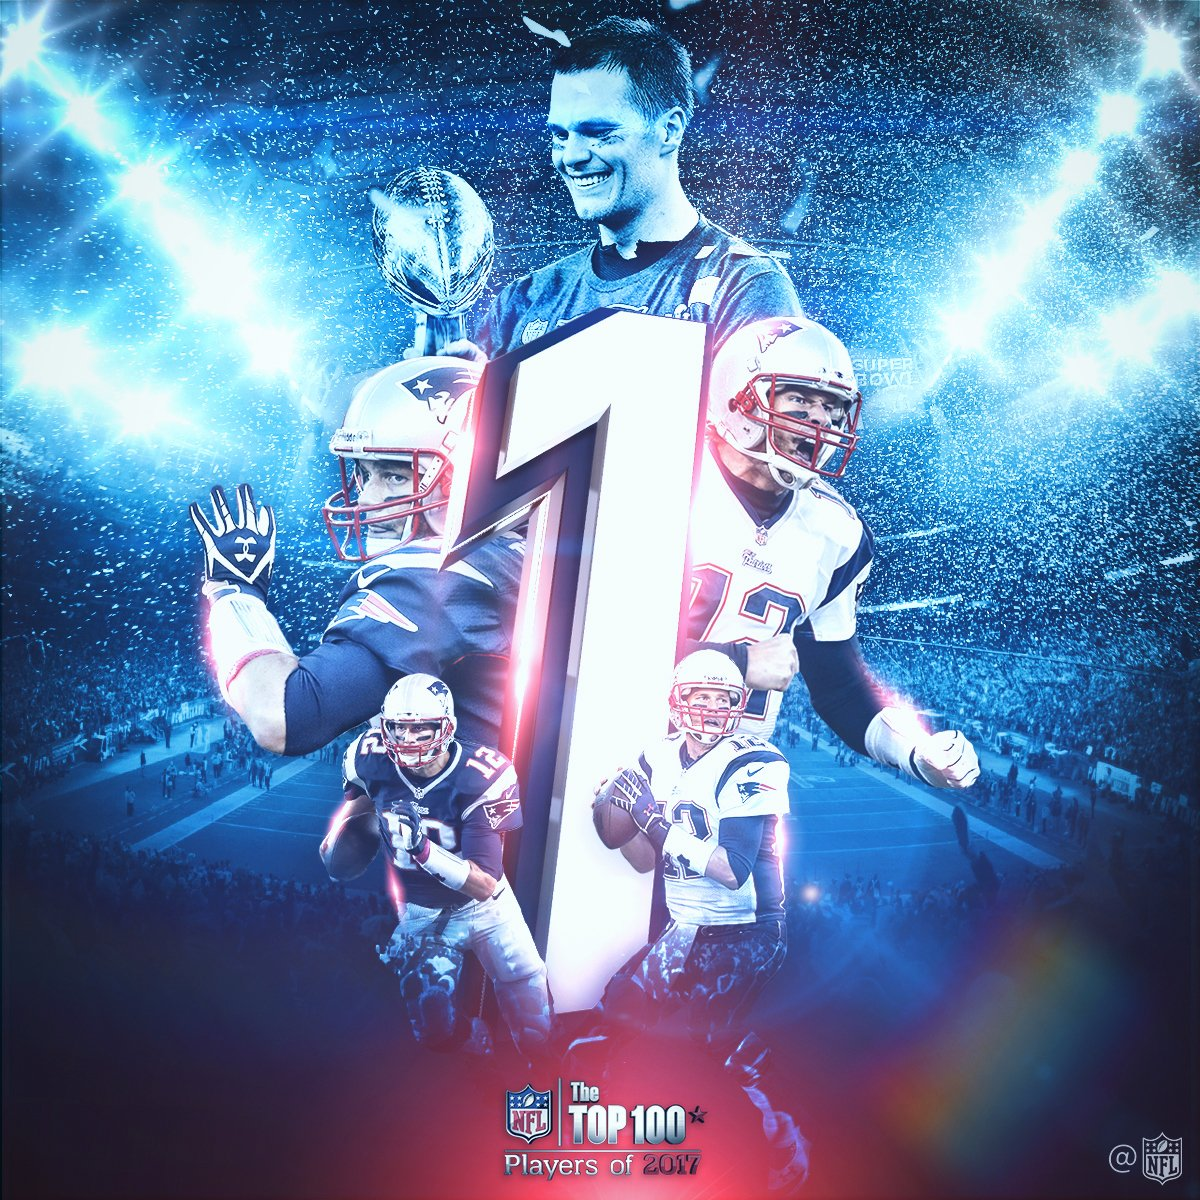 Tom Brady is No. 1 on the #NFLTop100 Players of 2017!